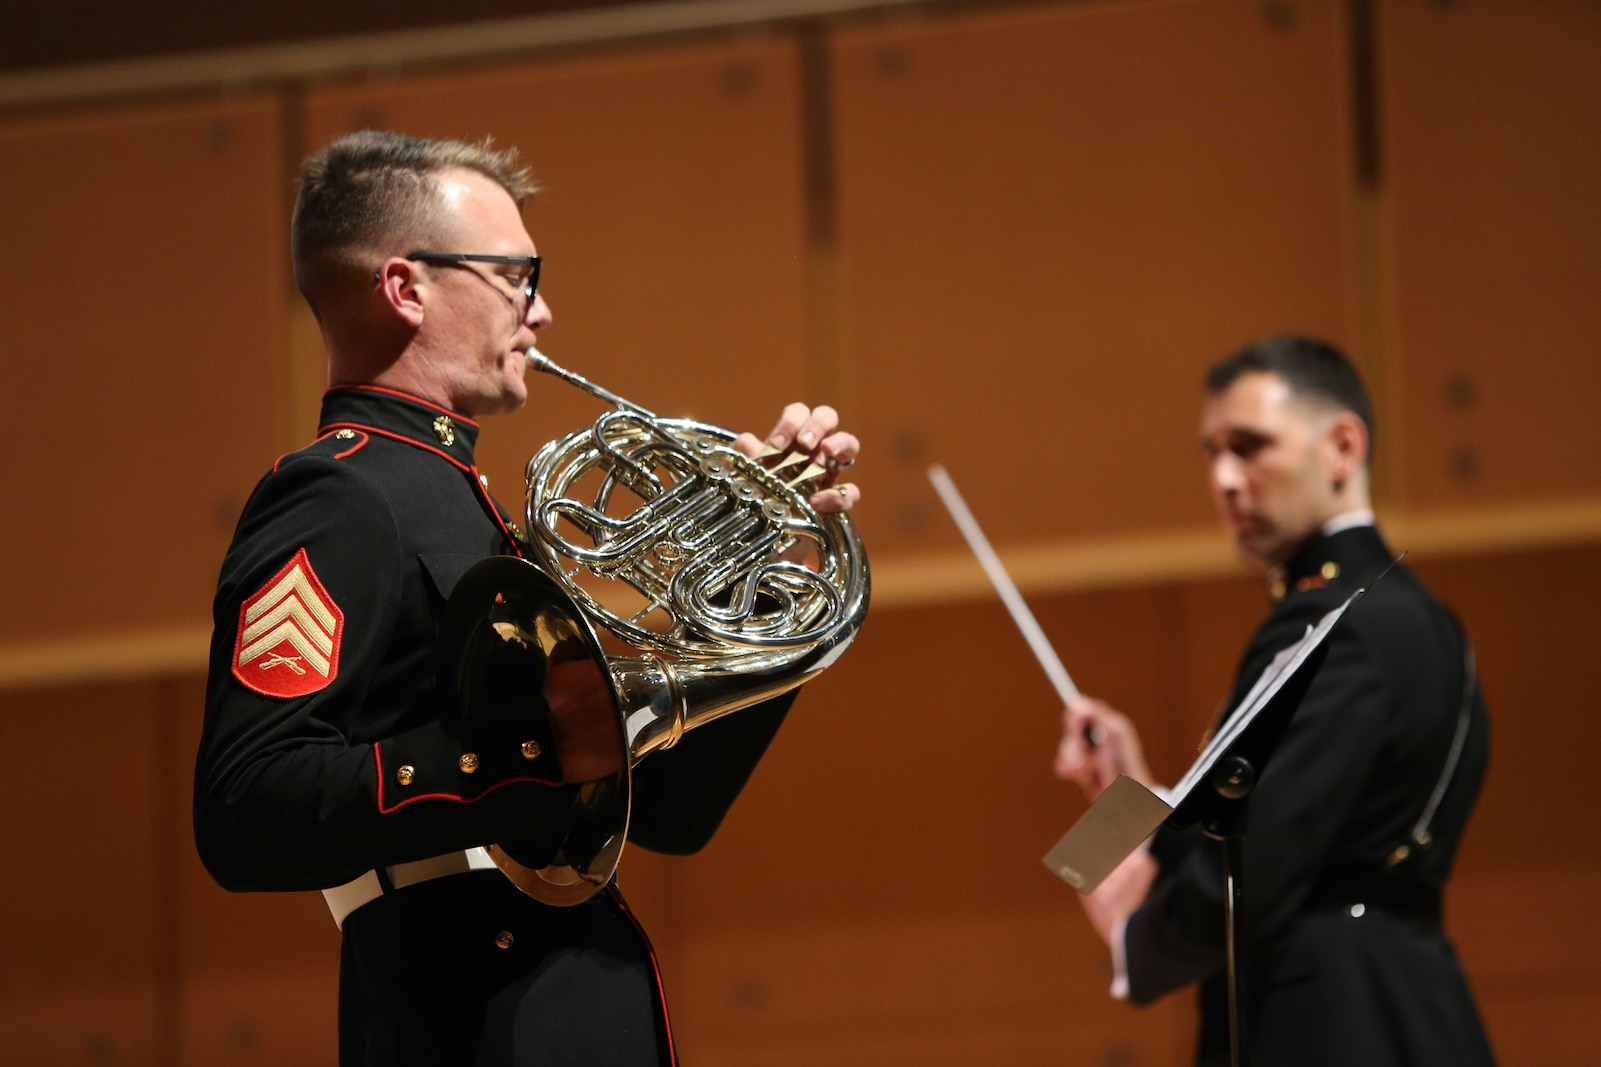 Sergeant John Brilhart, a musician with Marine Band San Diego, performs a solo at the Illinois State University Center for the Performing Arts during a tour of the Midwest. The band performs at more than 350 appearances per year. The band performs every Friday at Marine Corps Recruit Depot San Diego, California when they are not on tour. (Official U.S. Marine Corps photo by Sgt Calvin Hilt)